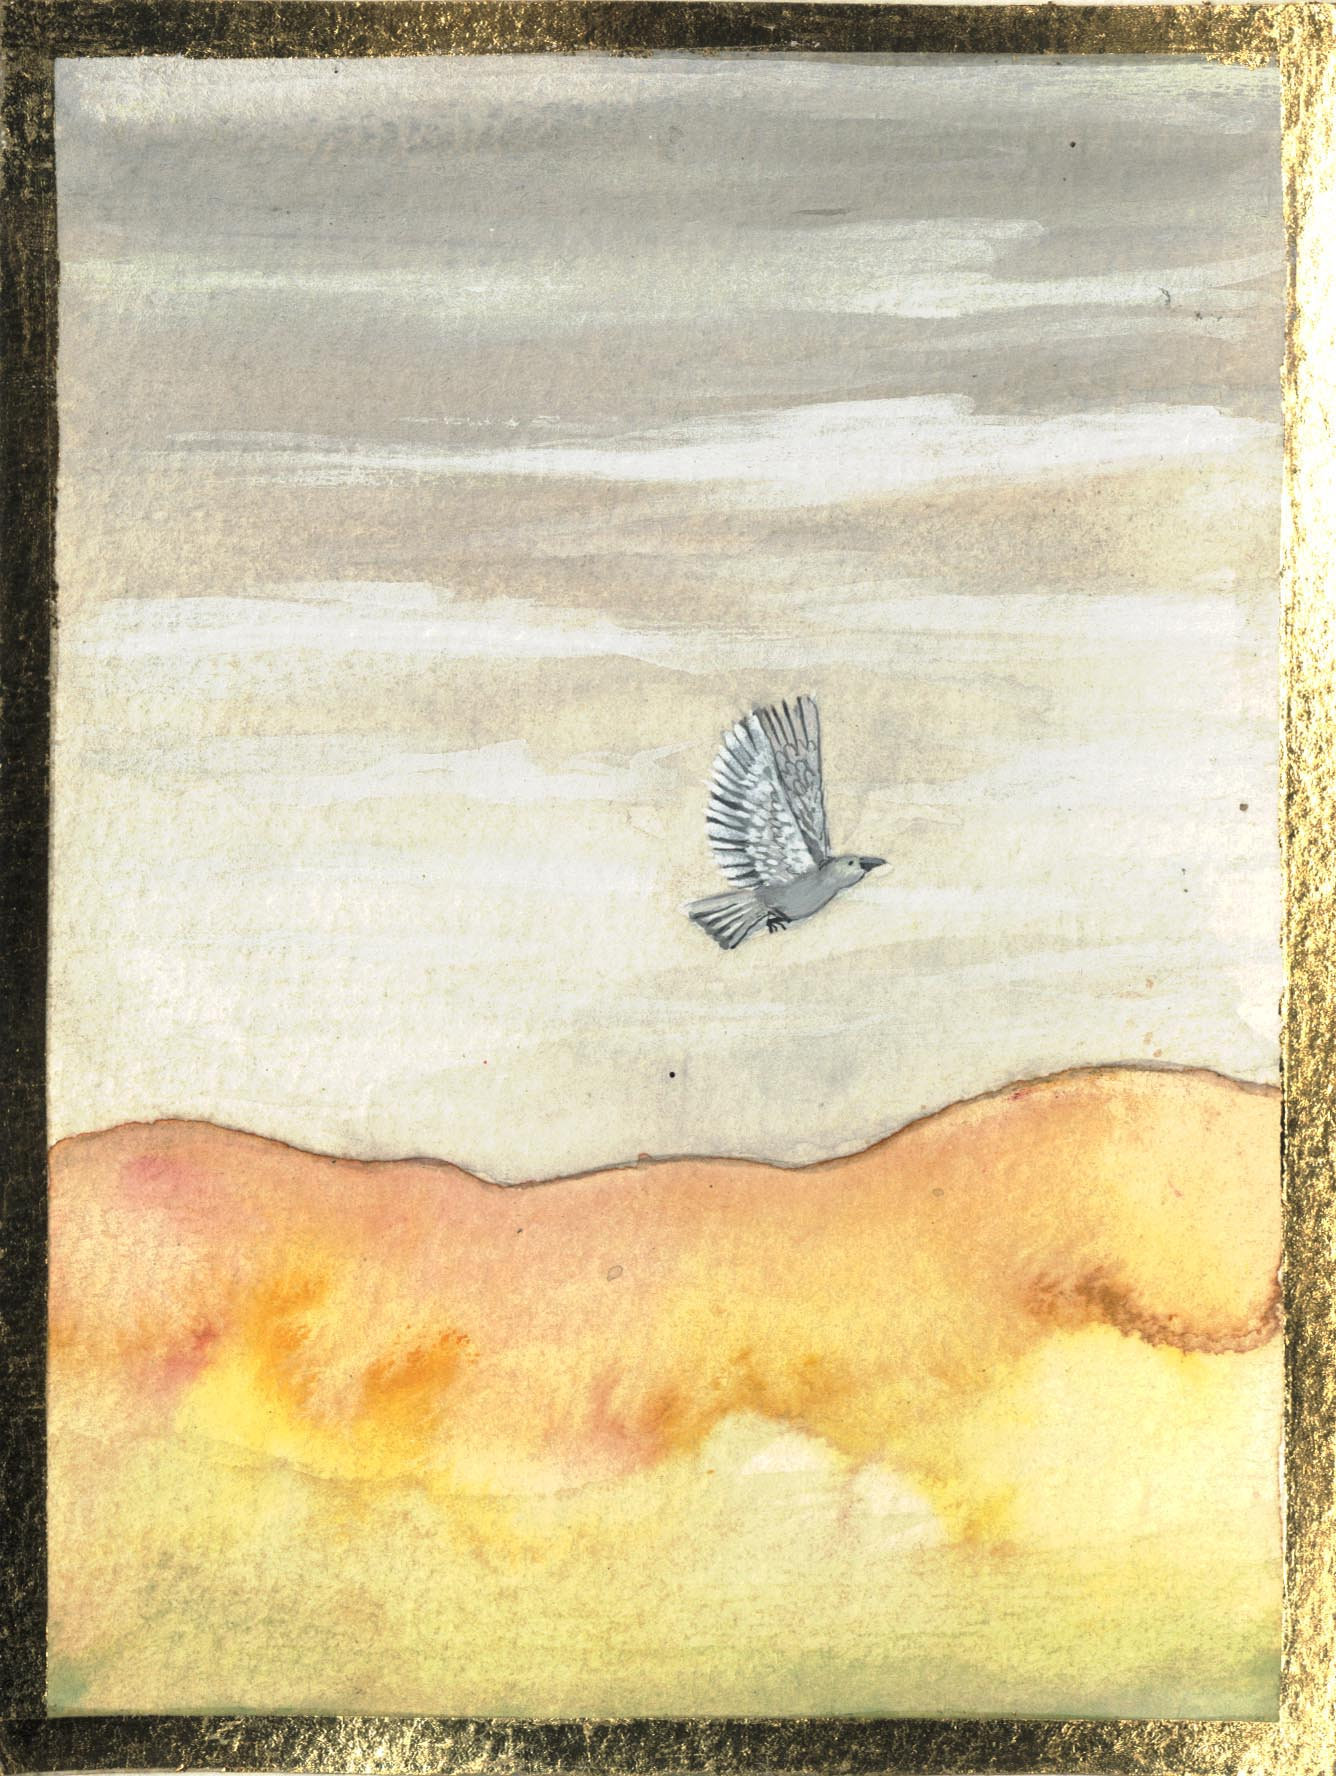 Lone Bird 2007 gouache on paper 6 x 4.5 inches